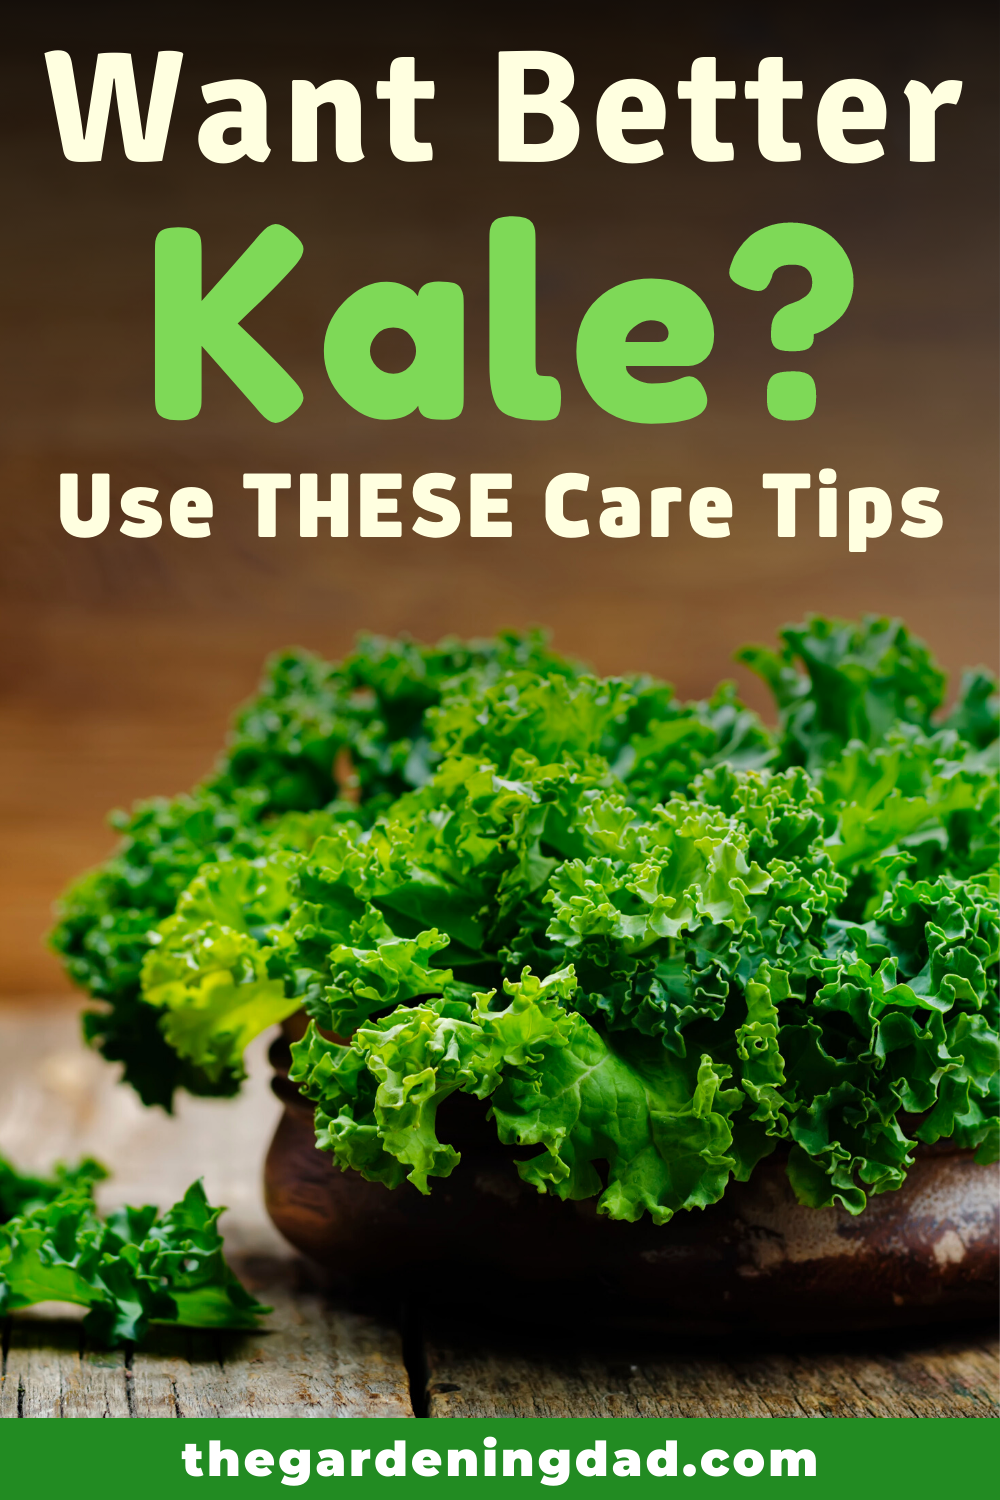 How to Grow Kale from Seed (6 Quick Tips) in 2020 ... Companion Planting Kale